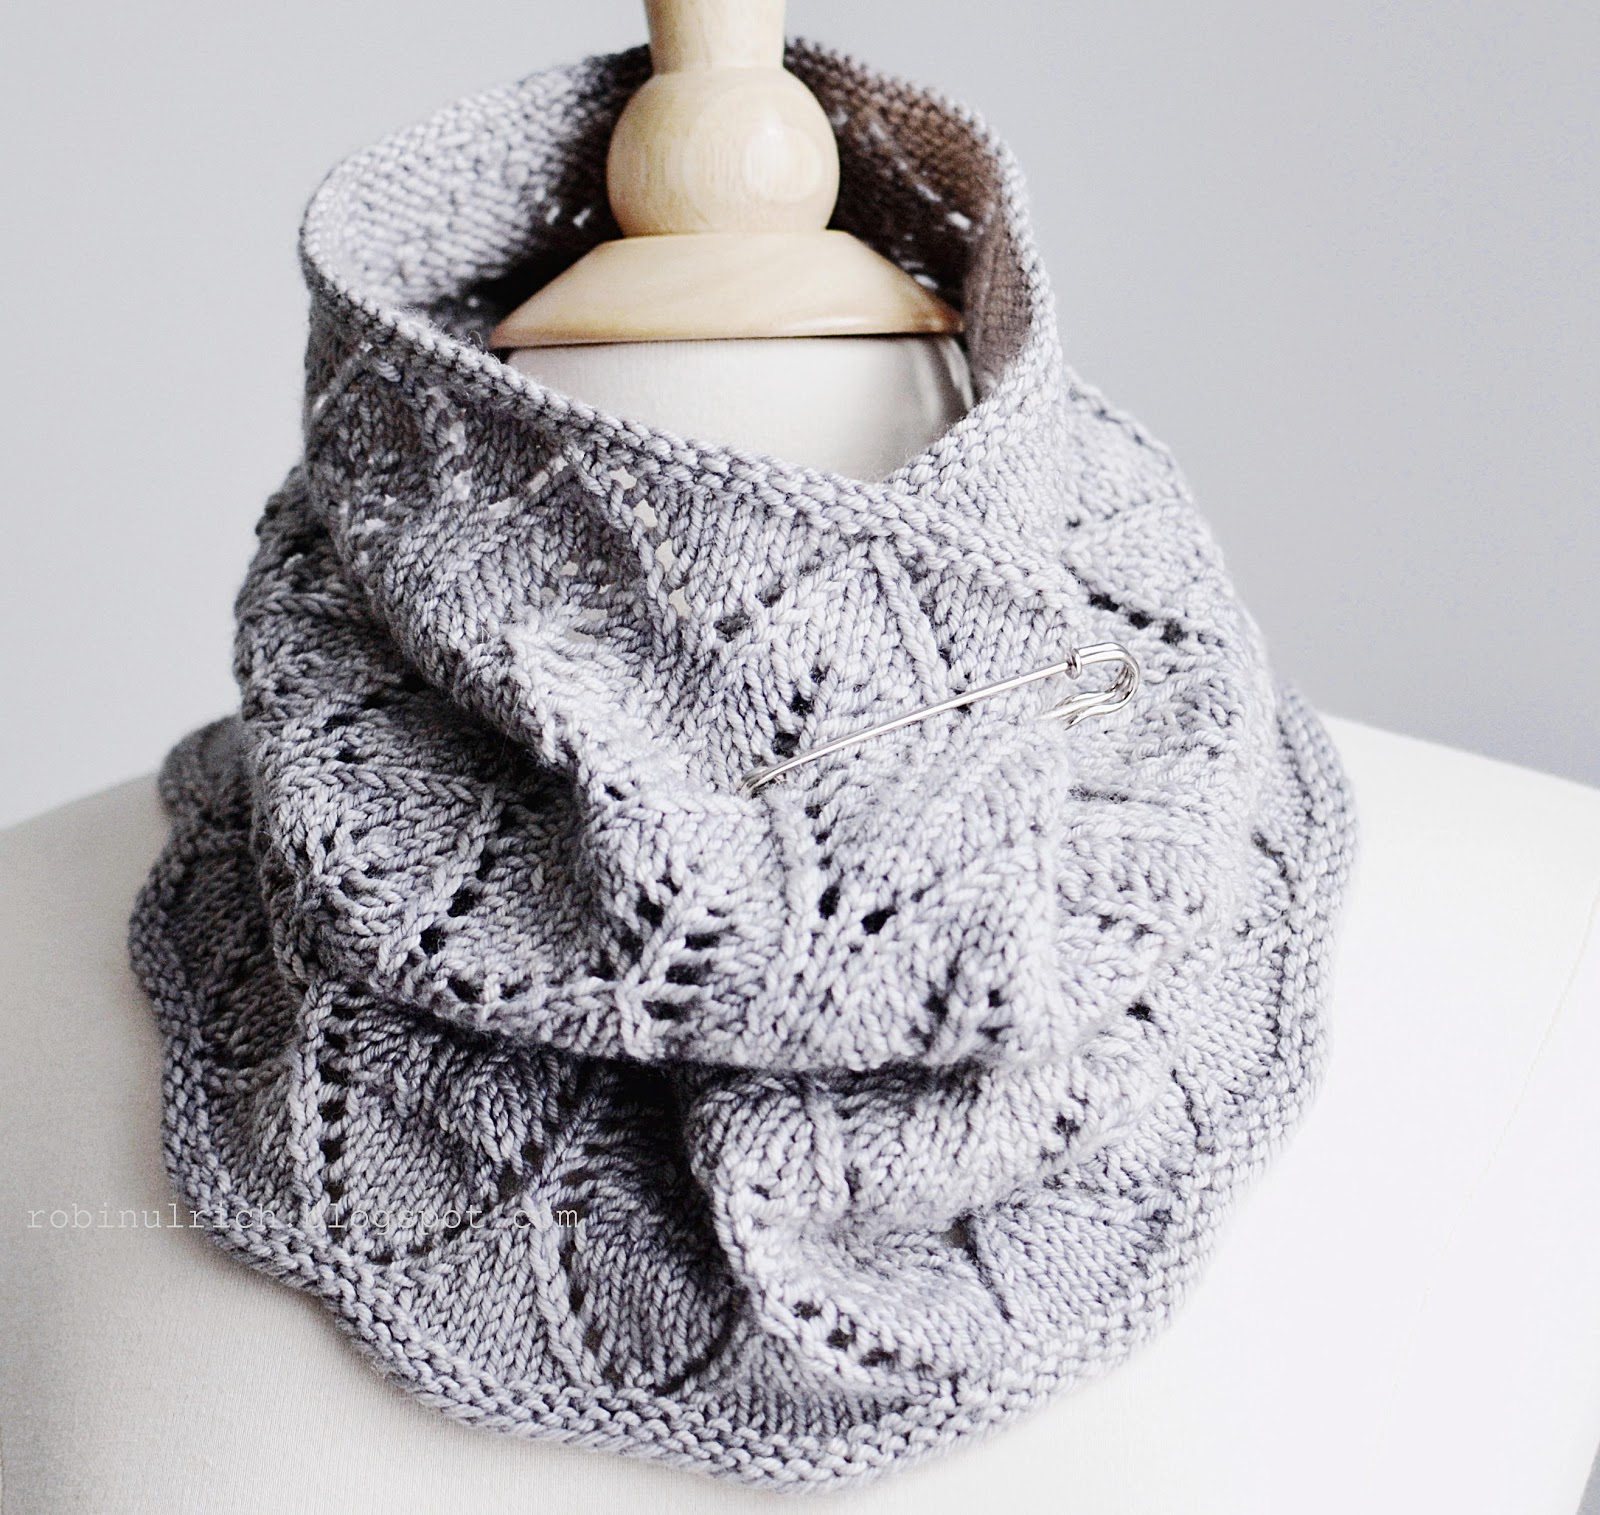 Free Knitting Patterns Cowl Hat : Robin Ulrich Studio: New Knitting Pattern - Greyhaven